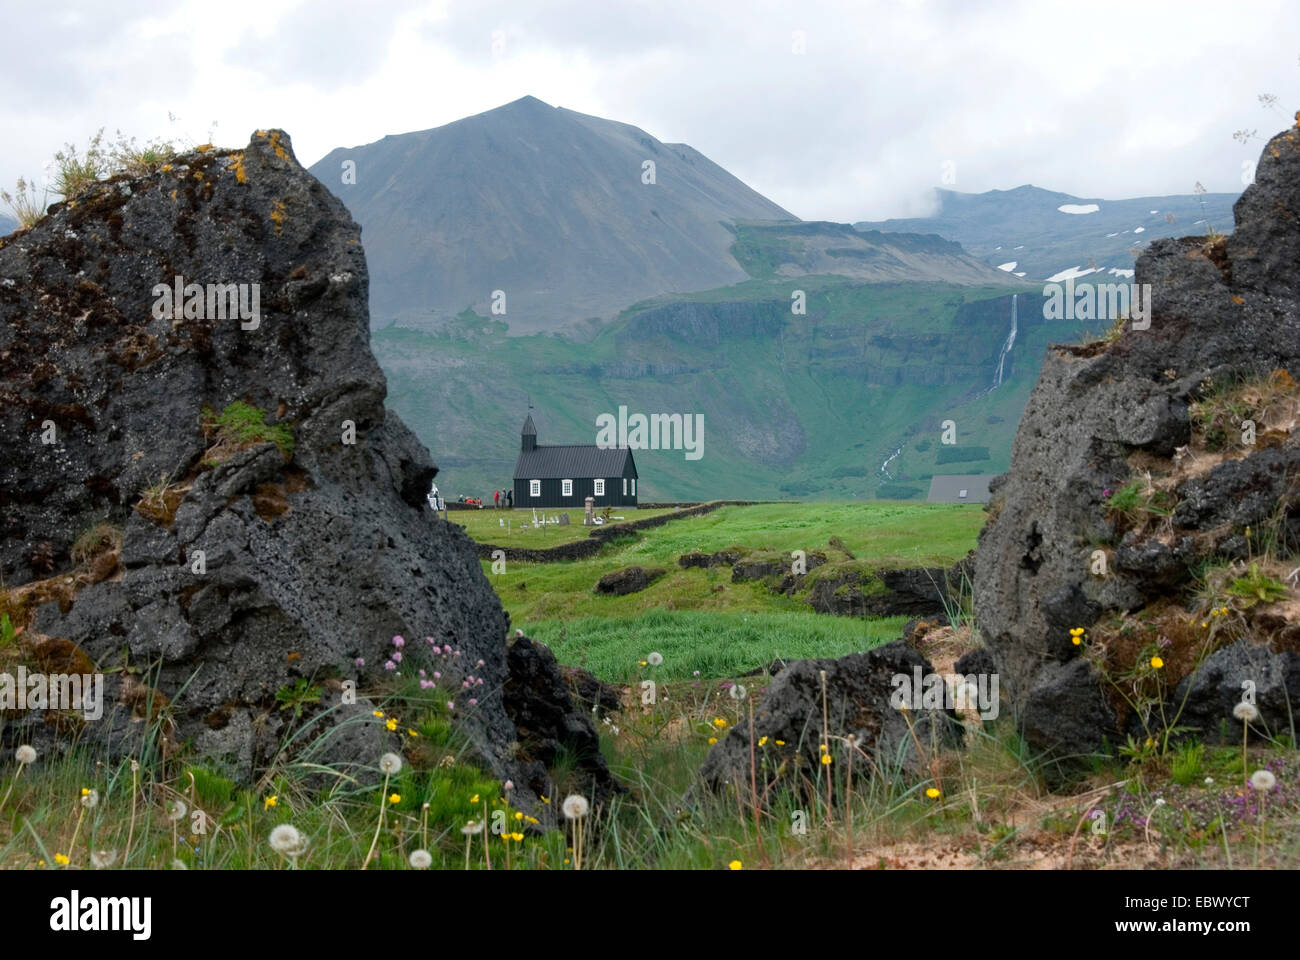 view through two rocks of the lava field 'Budahraun' at the little wooden church 'Budirkirkja' in - Stock Image